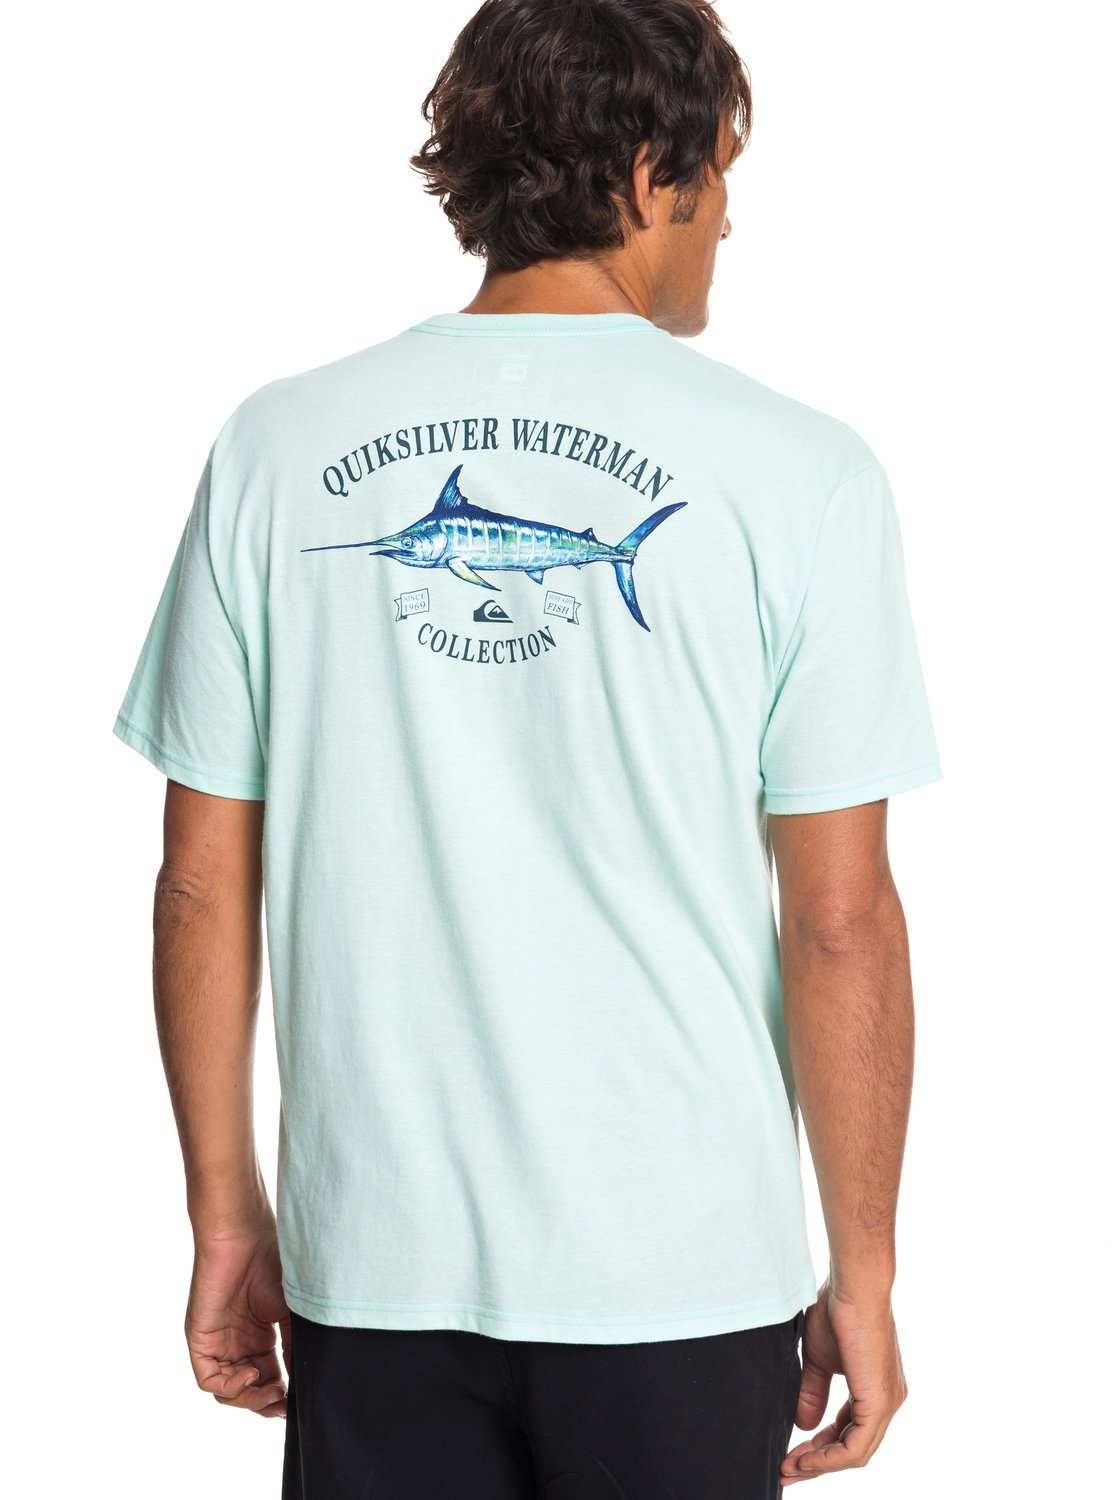 Quiksilver-Waterman-Wave-After-Wave-Tee-AQMZT03346 thumbnail 13